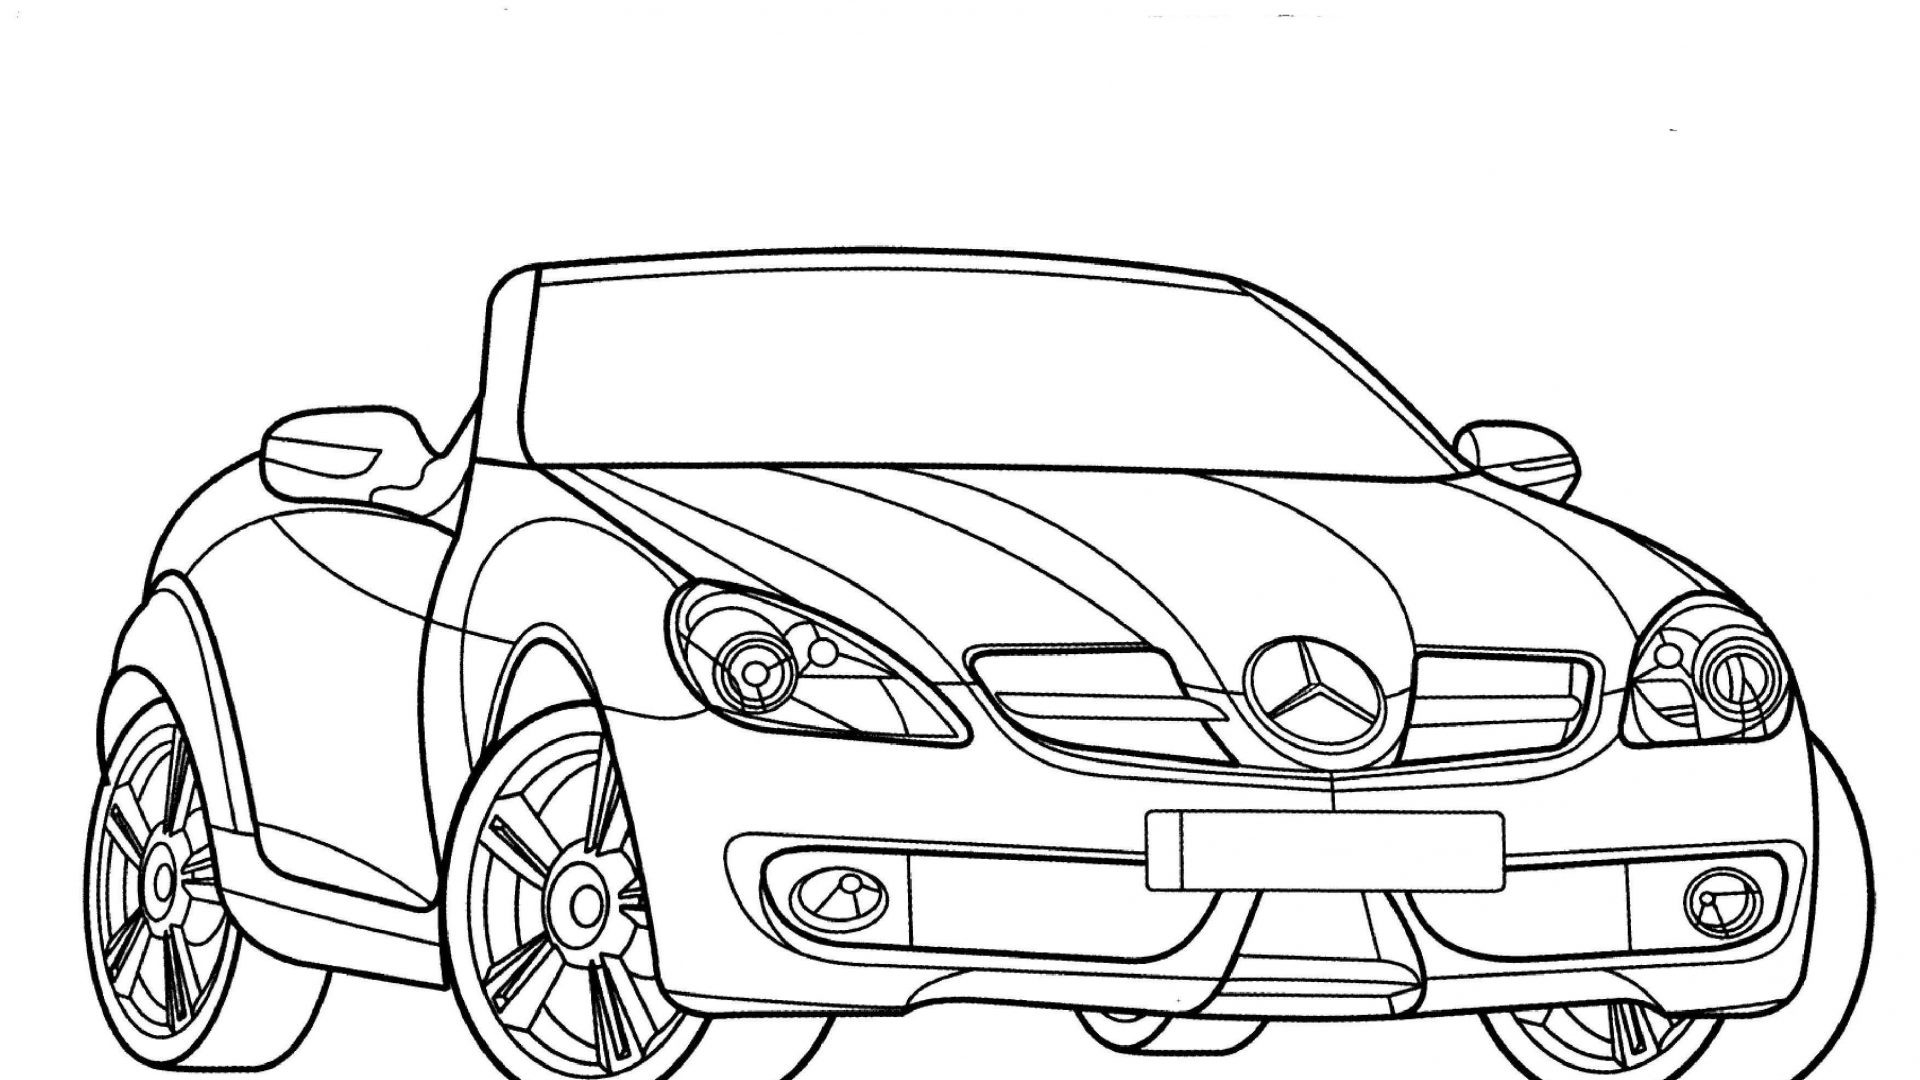 mercedes benz coloring sheets mercedes coloring pages coloring pages to download and print benz coloring sheets mercedes